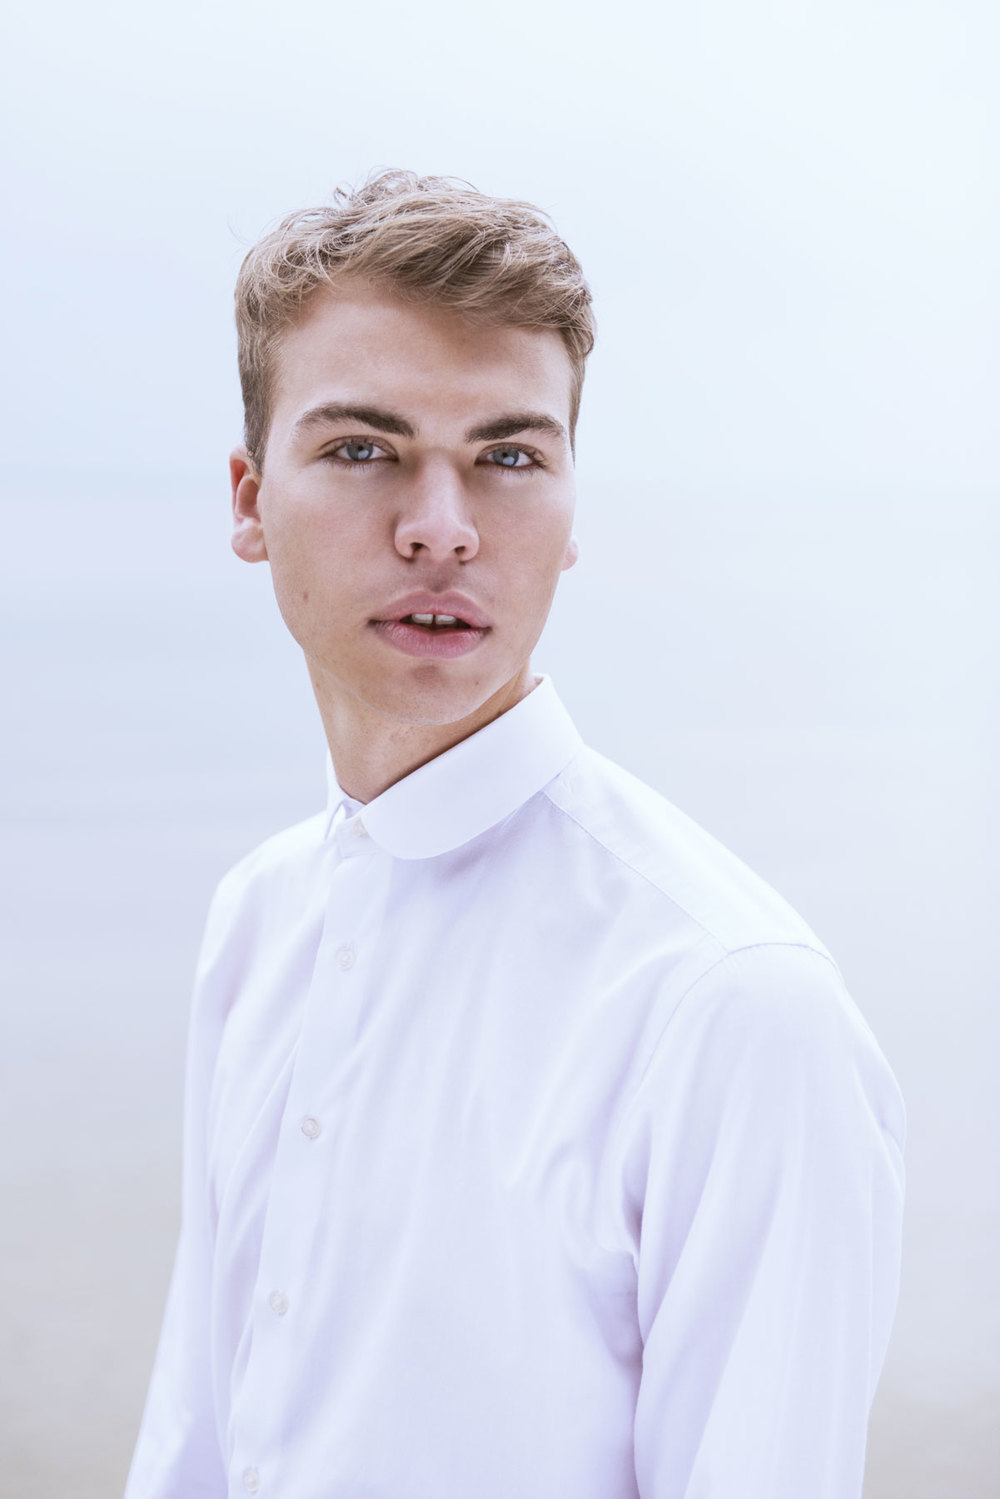 harry-uk-model-white-shirt.jpg